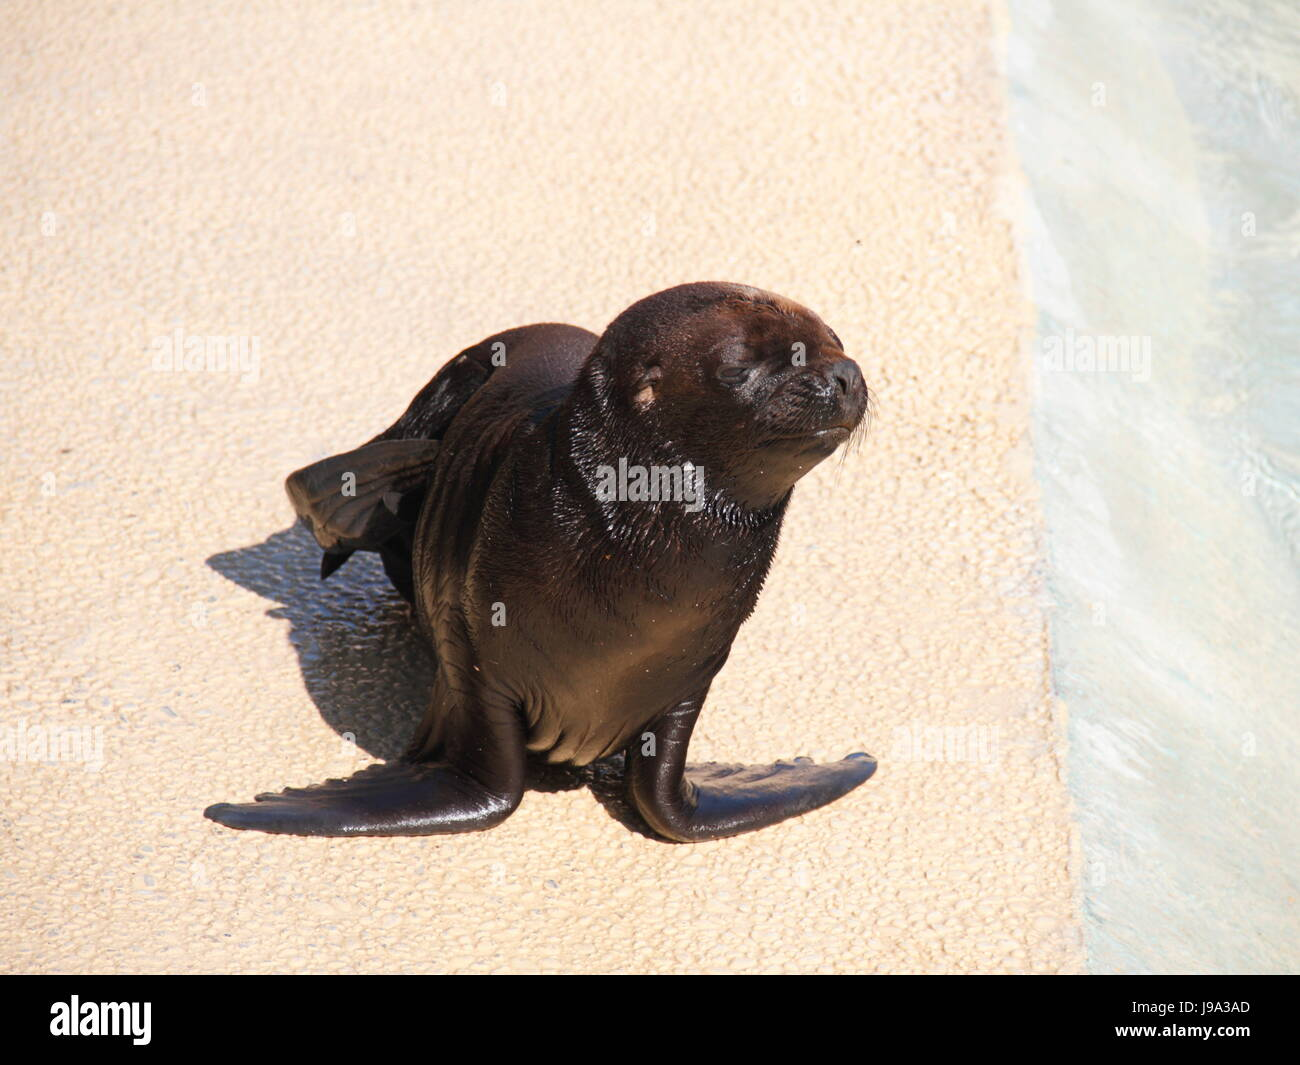 mammals, crawl, sea lion, animal, mammal, brown, brownish, brunette, hunter, Stock Photo